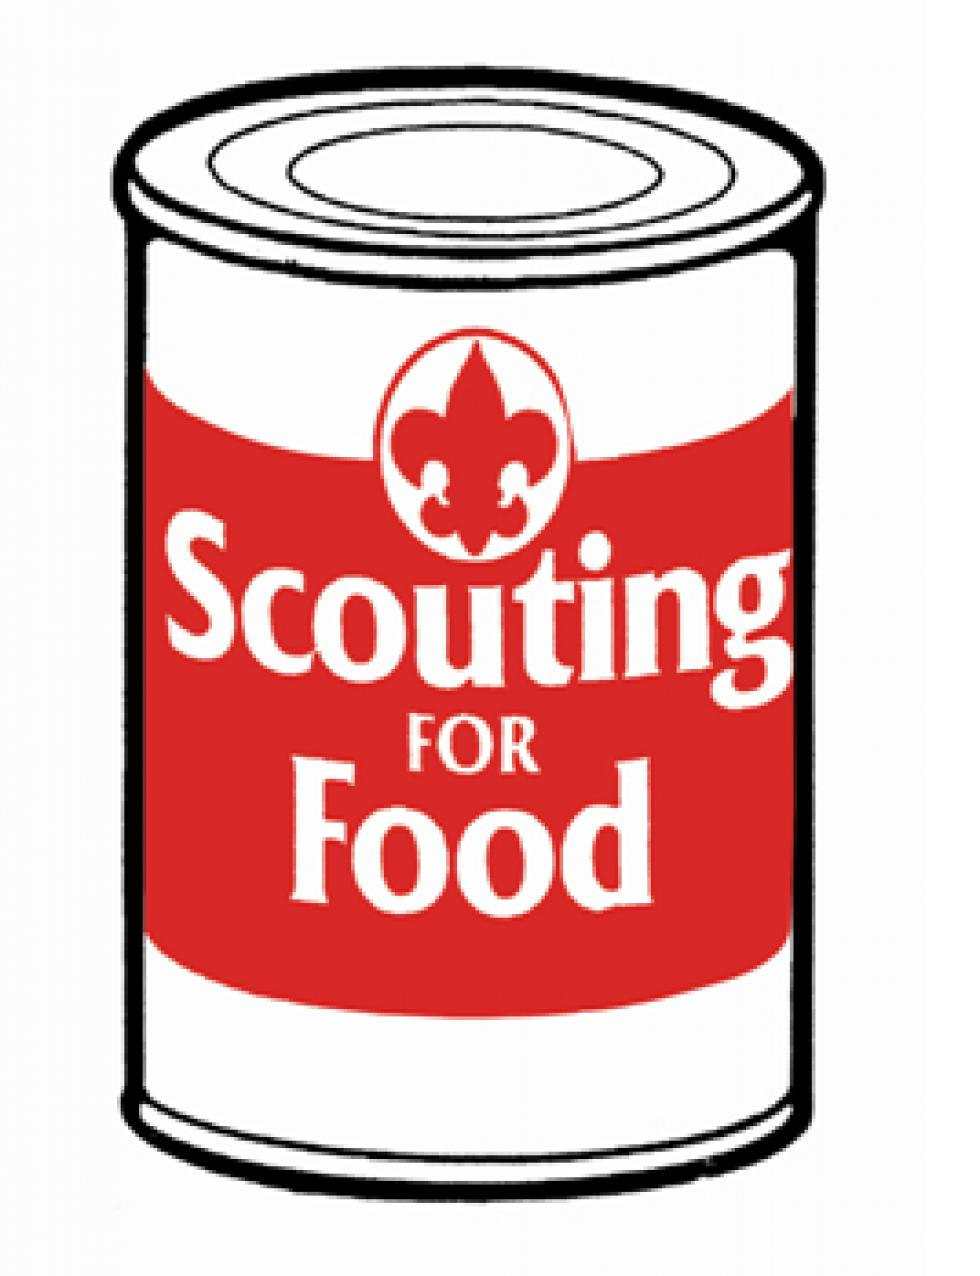 Scouting for food clipart vector library Scouting For Food – Glacier's Edge Council, BSA vector library